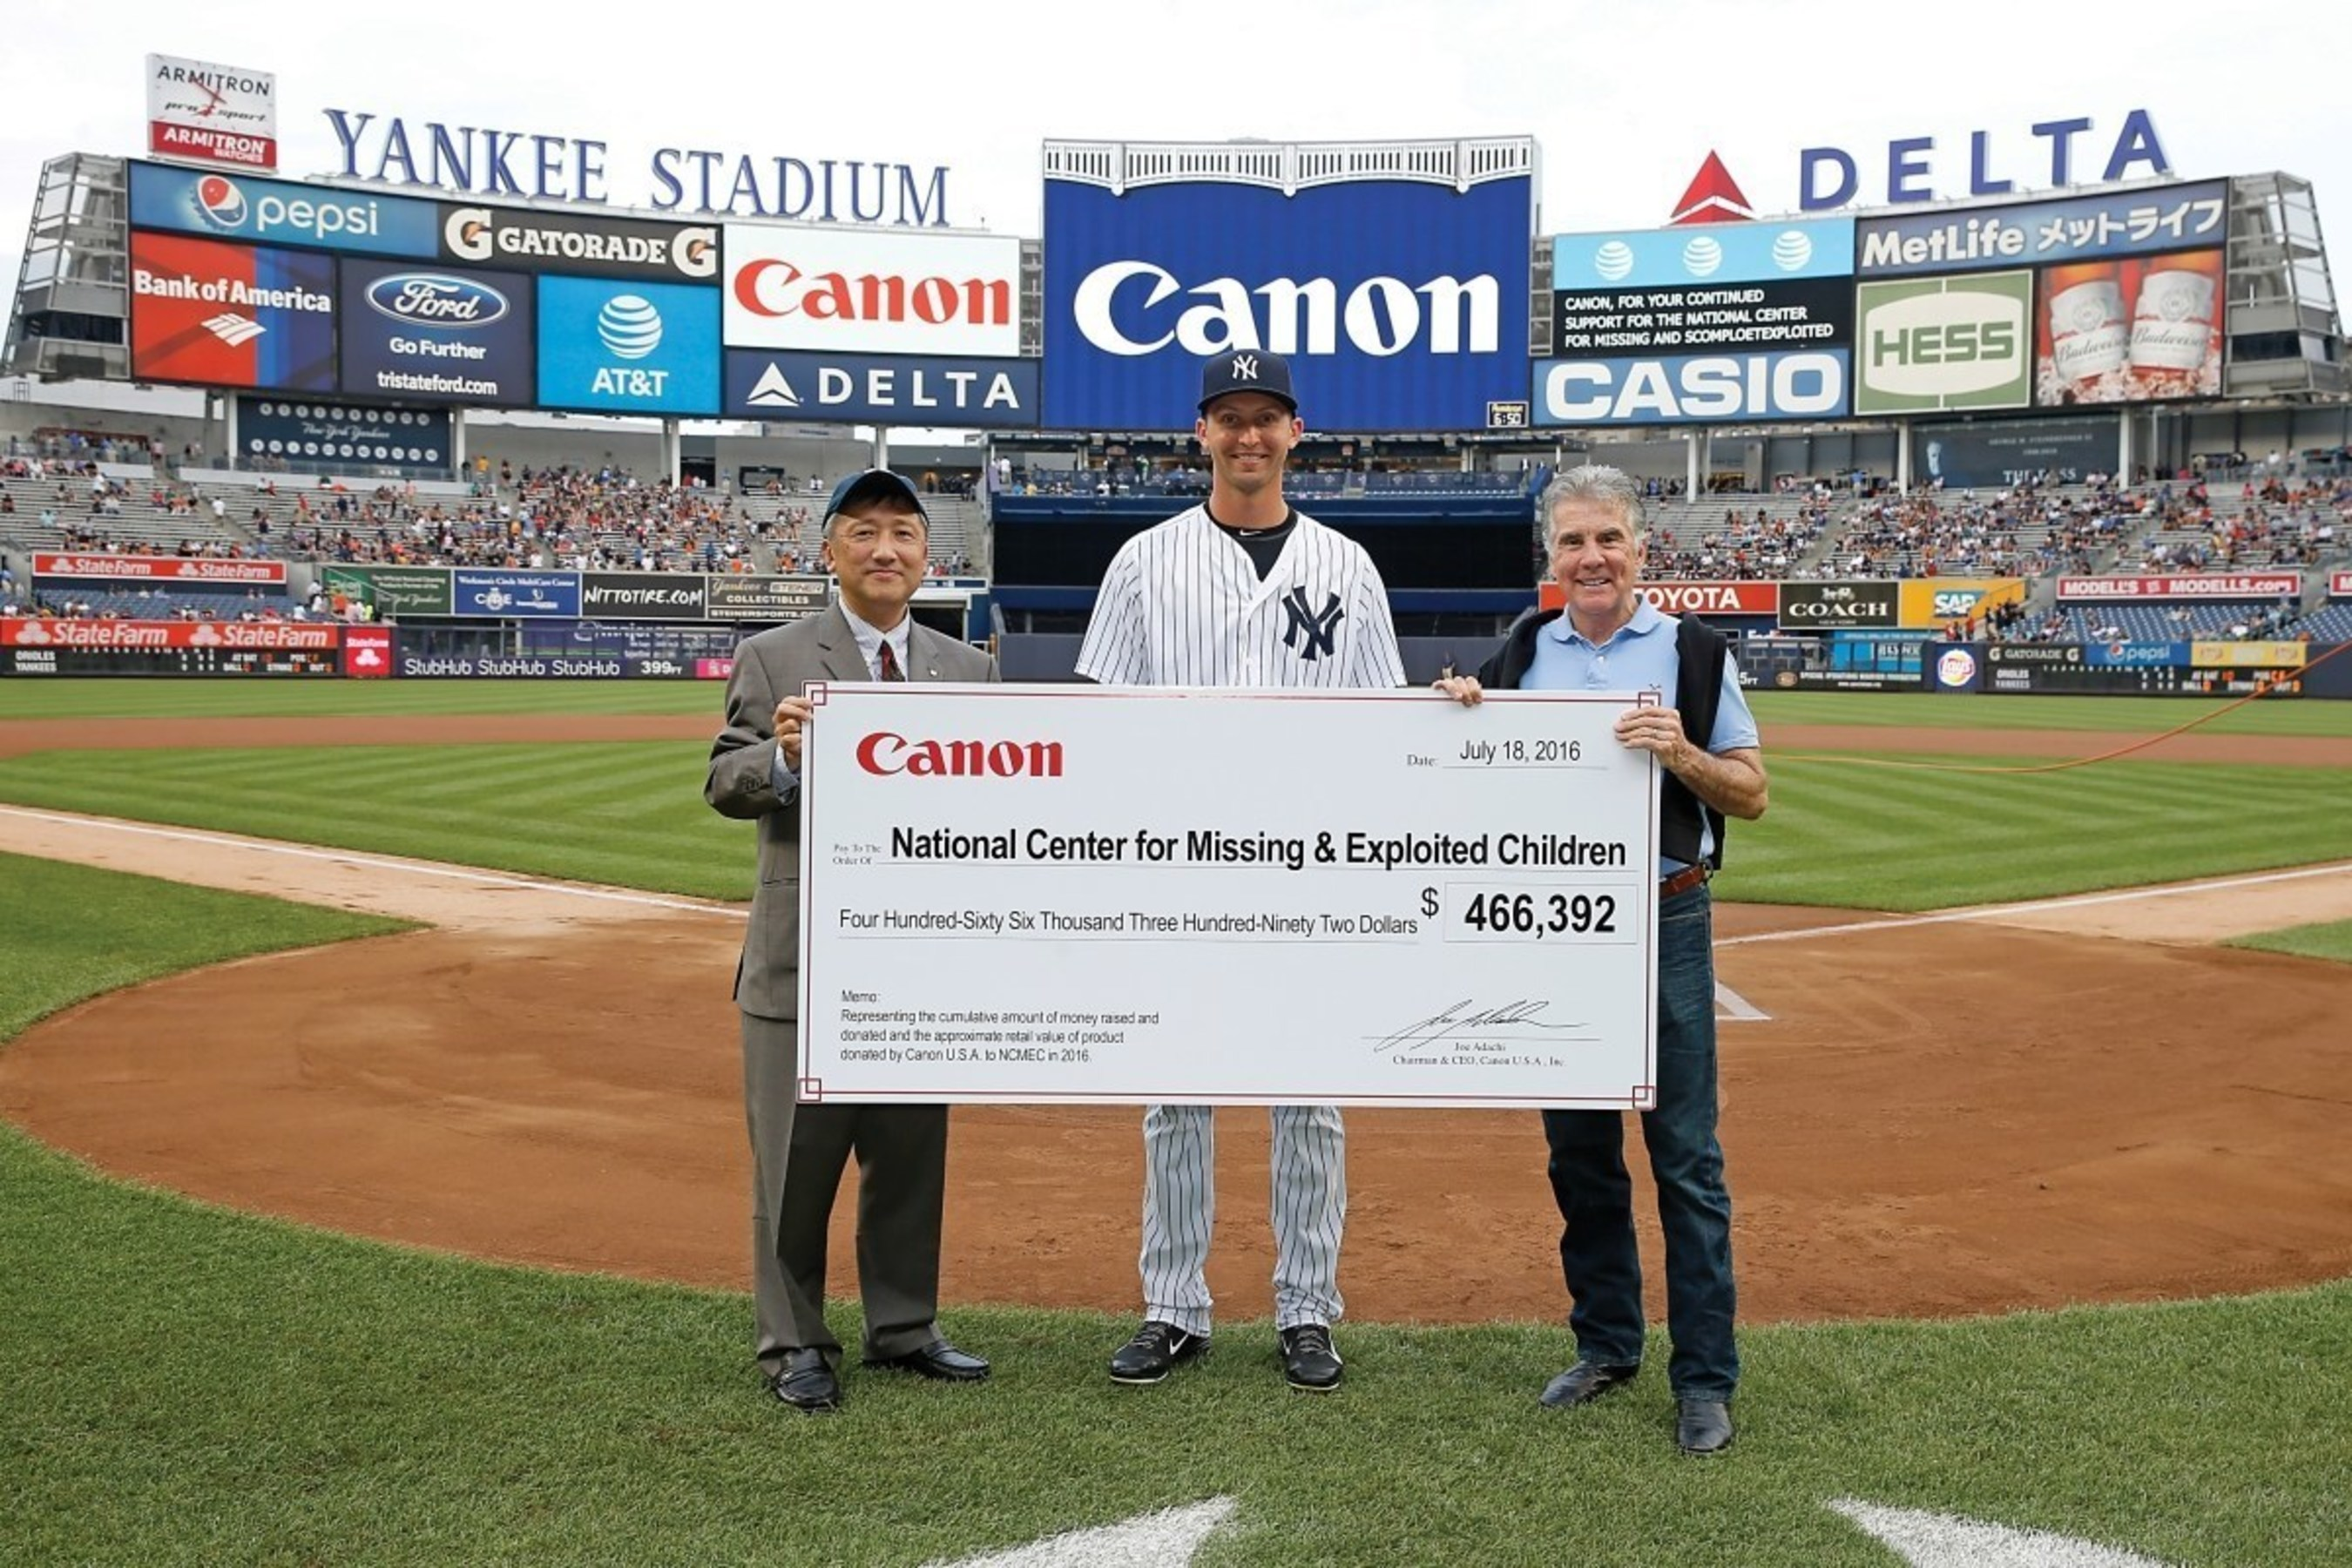 Photo Credit: New York Yankees. All Rights Reserved. From left to right: Toyo Kuwamura, Chasen Shreve and John Walsh